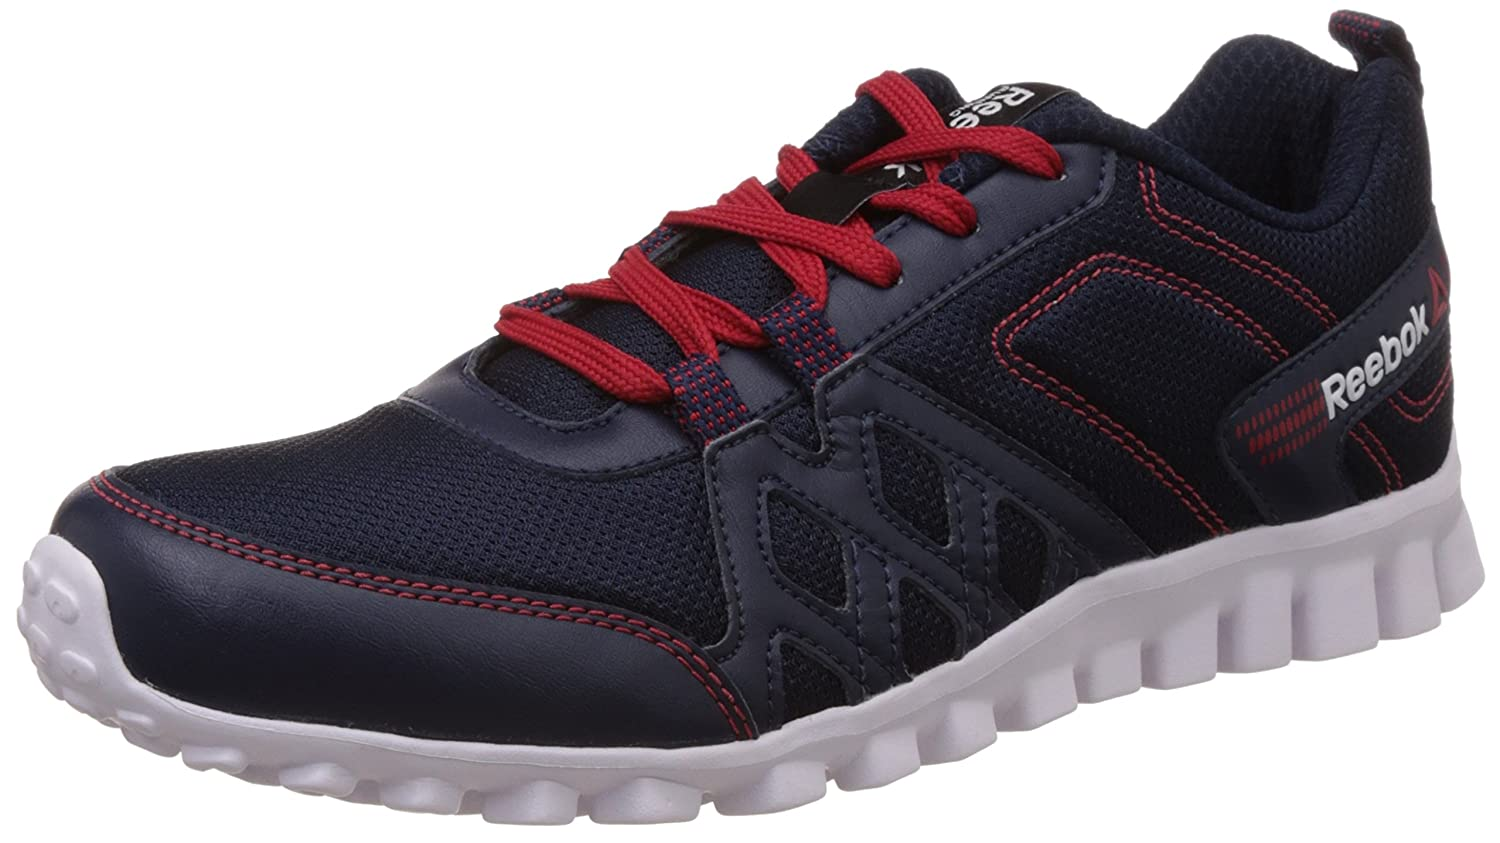 size 40 7b73d 4a45d Reebok Boy s Run Fusion 2.0 Jr Dark Blue, Red Rush and White Sports Shoes -  5.5 UK  Buy Online at Low Prices in India - Amazon.in